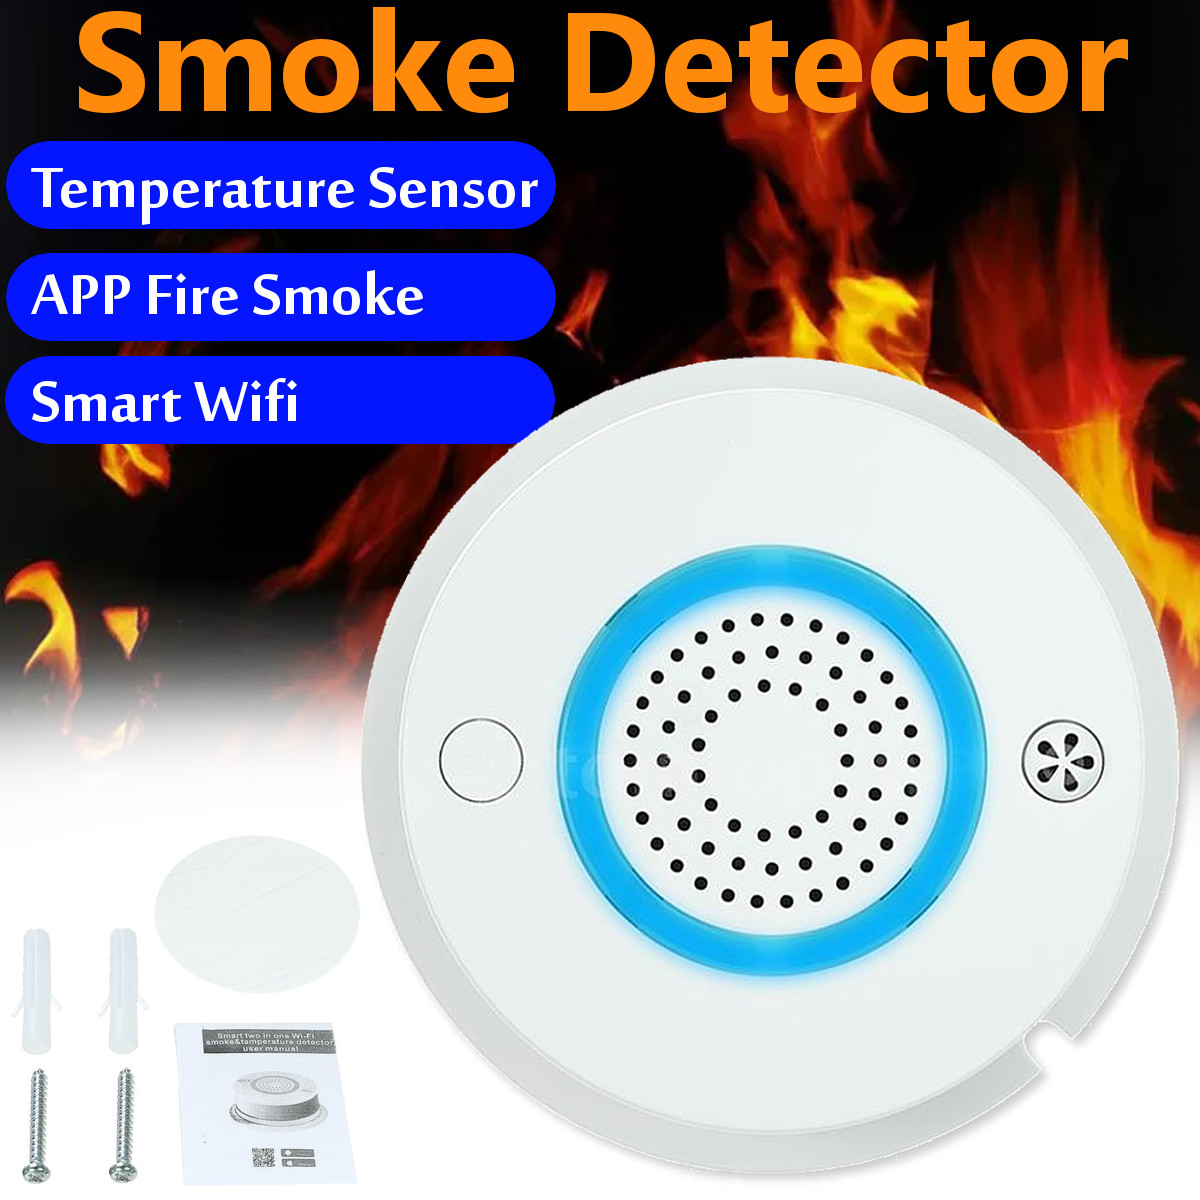 Smart WIFI Smoke Detector Fires Alarm Temperature Sensor GPRS Fires Protect Monitor For Home Store Office Security Alarm System